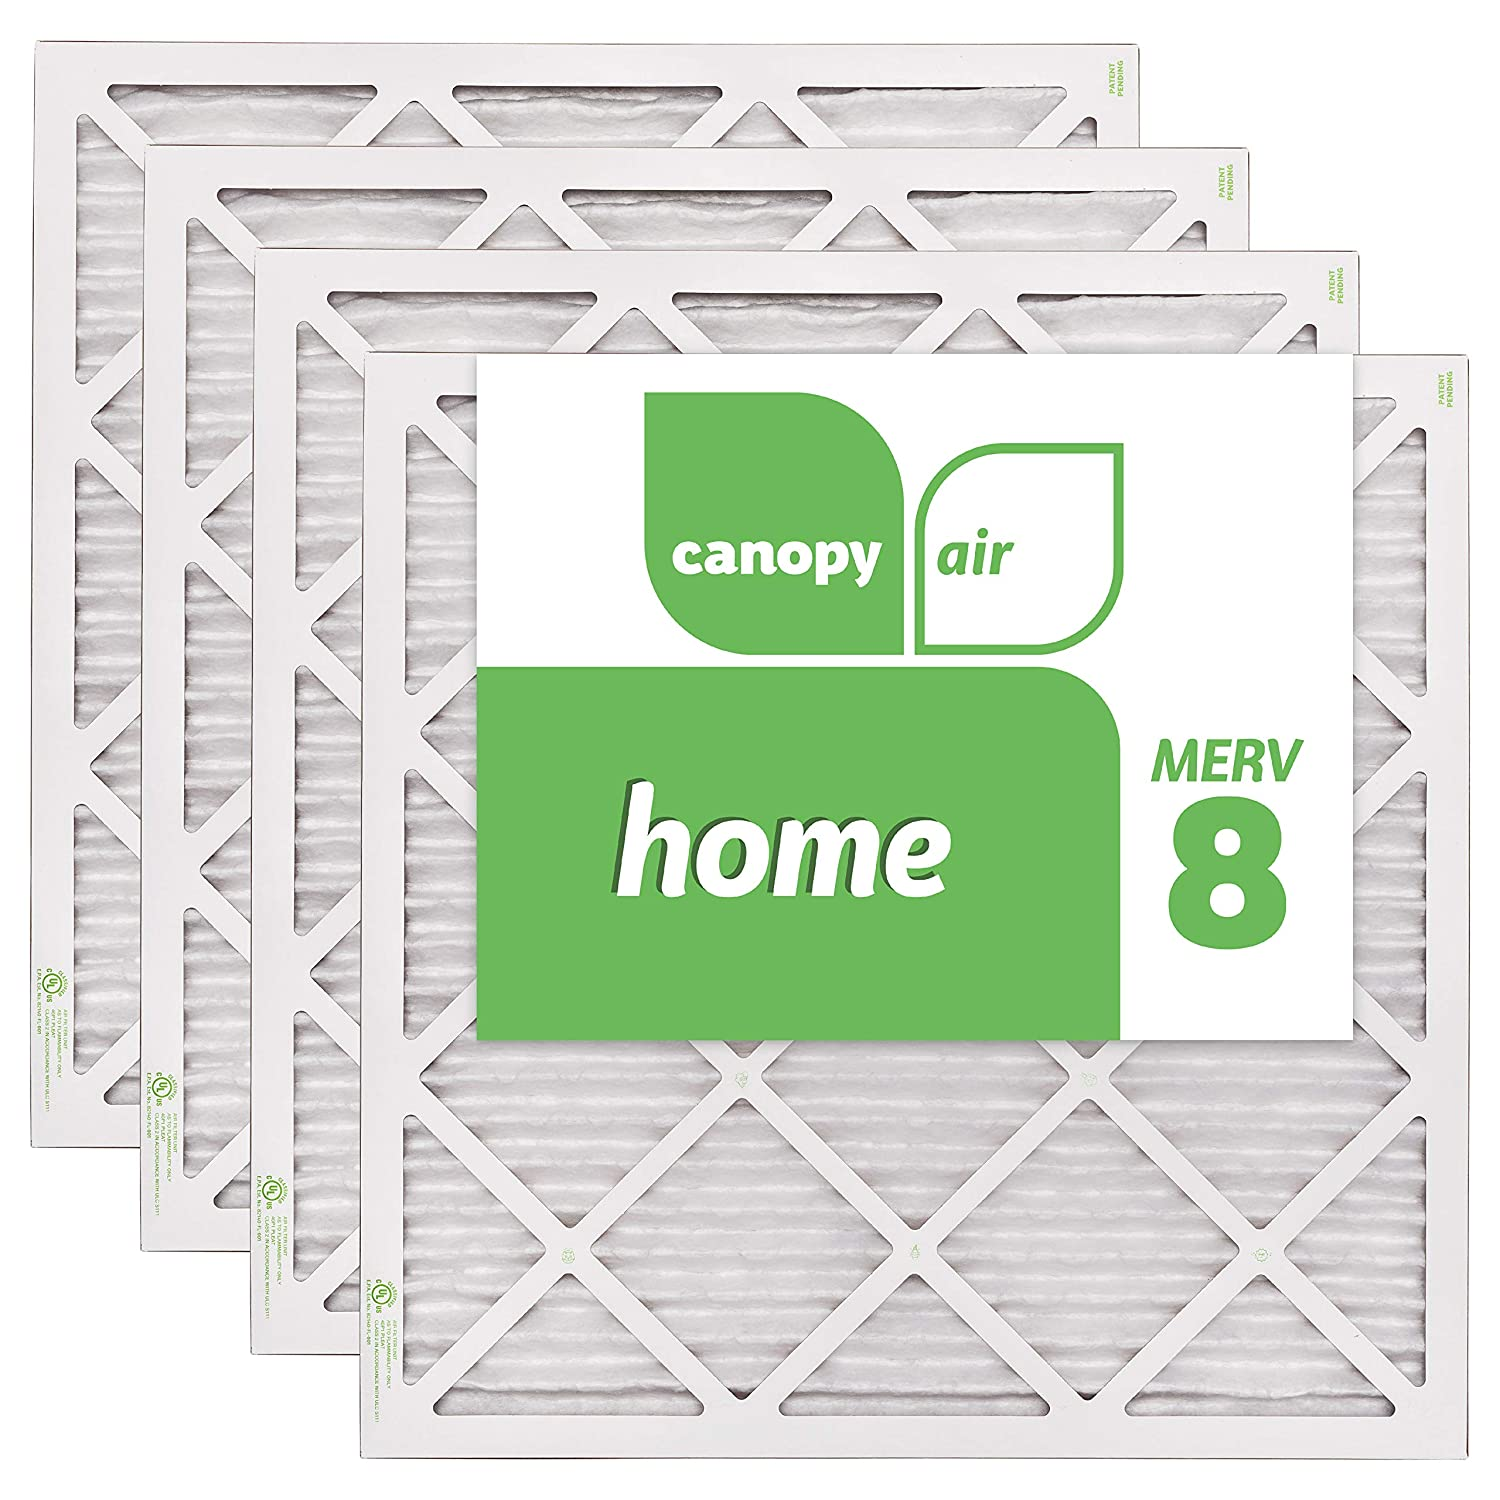 3. Canopy Air MERV 8 - EZ Flow Air Filter 20x20x1